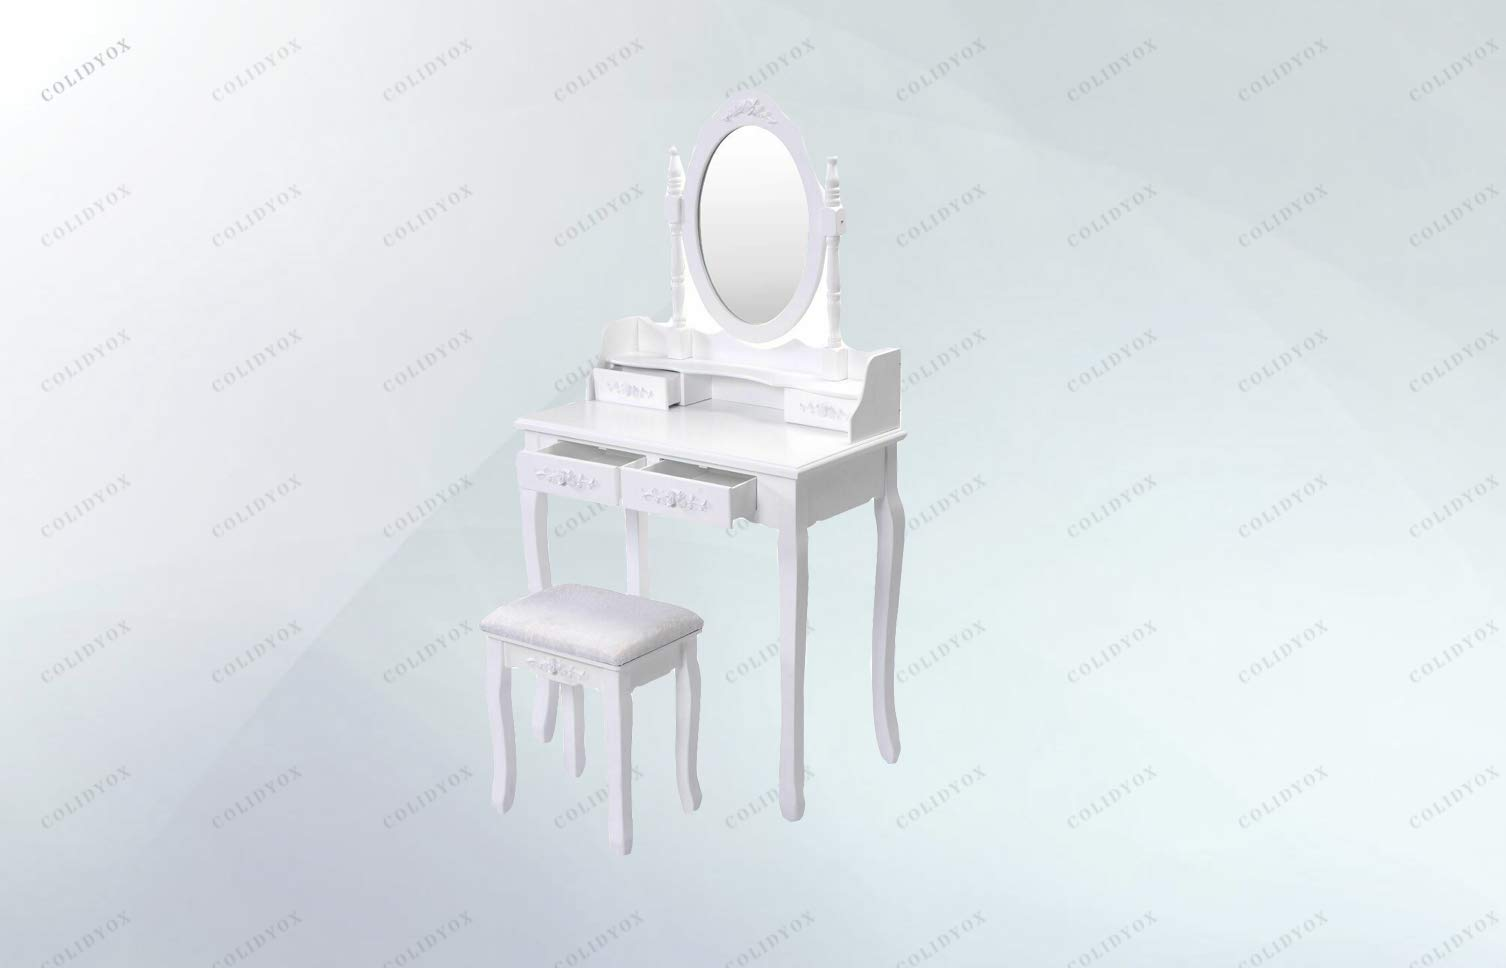 COLIDYOX>>>White Vanity Wood Makeup Dressing Table Our White Vanity Makeup Table and Stool Set is The Preference for Every Girl. Made of Thick MDF Panel and Pine Wood Leg